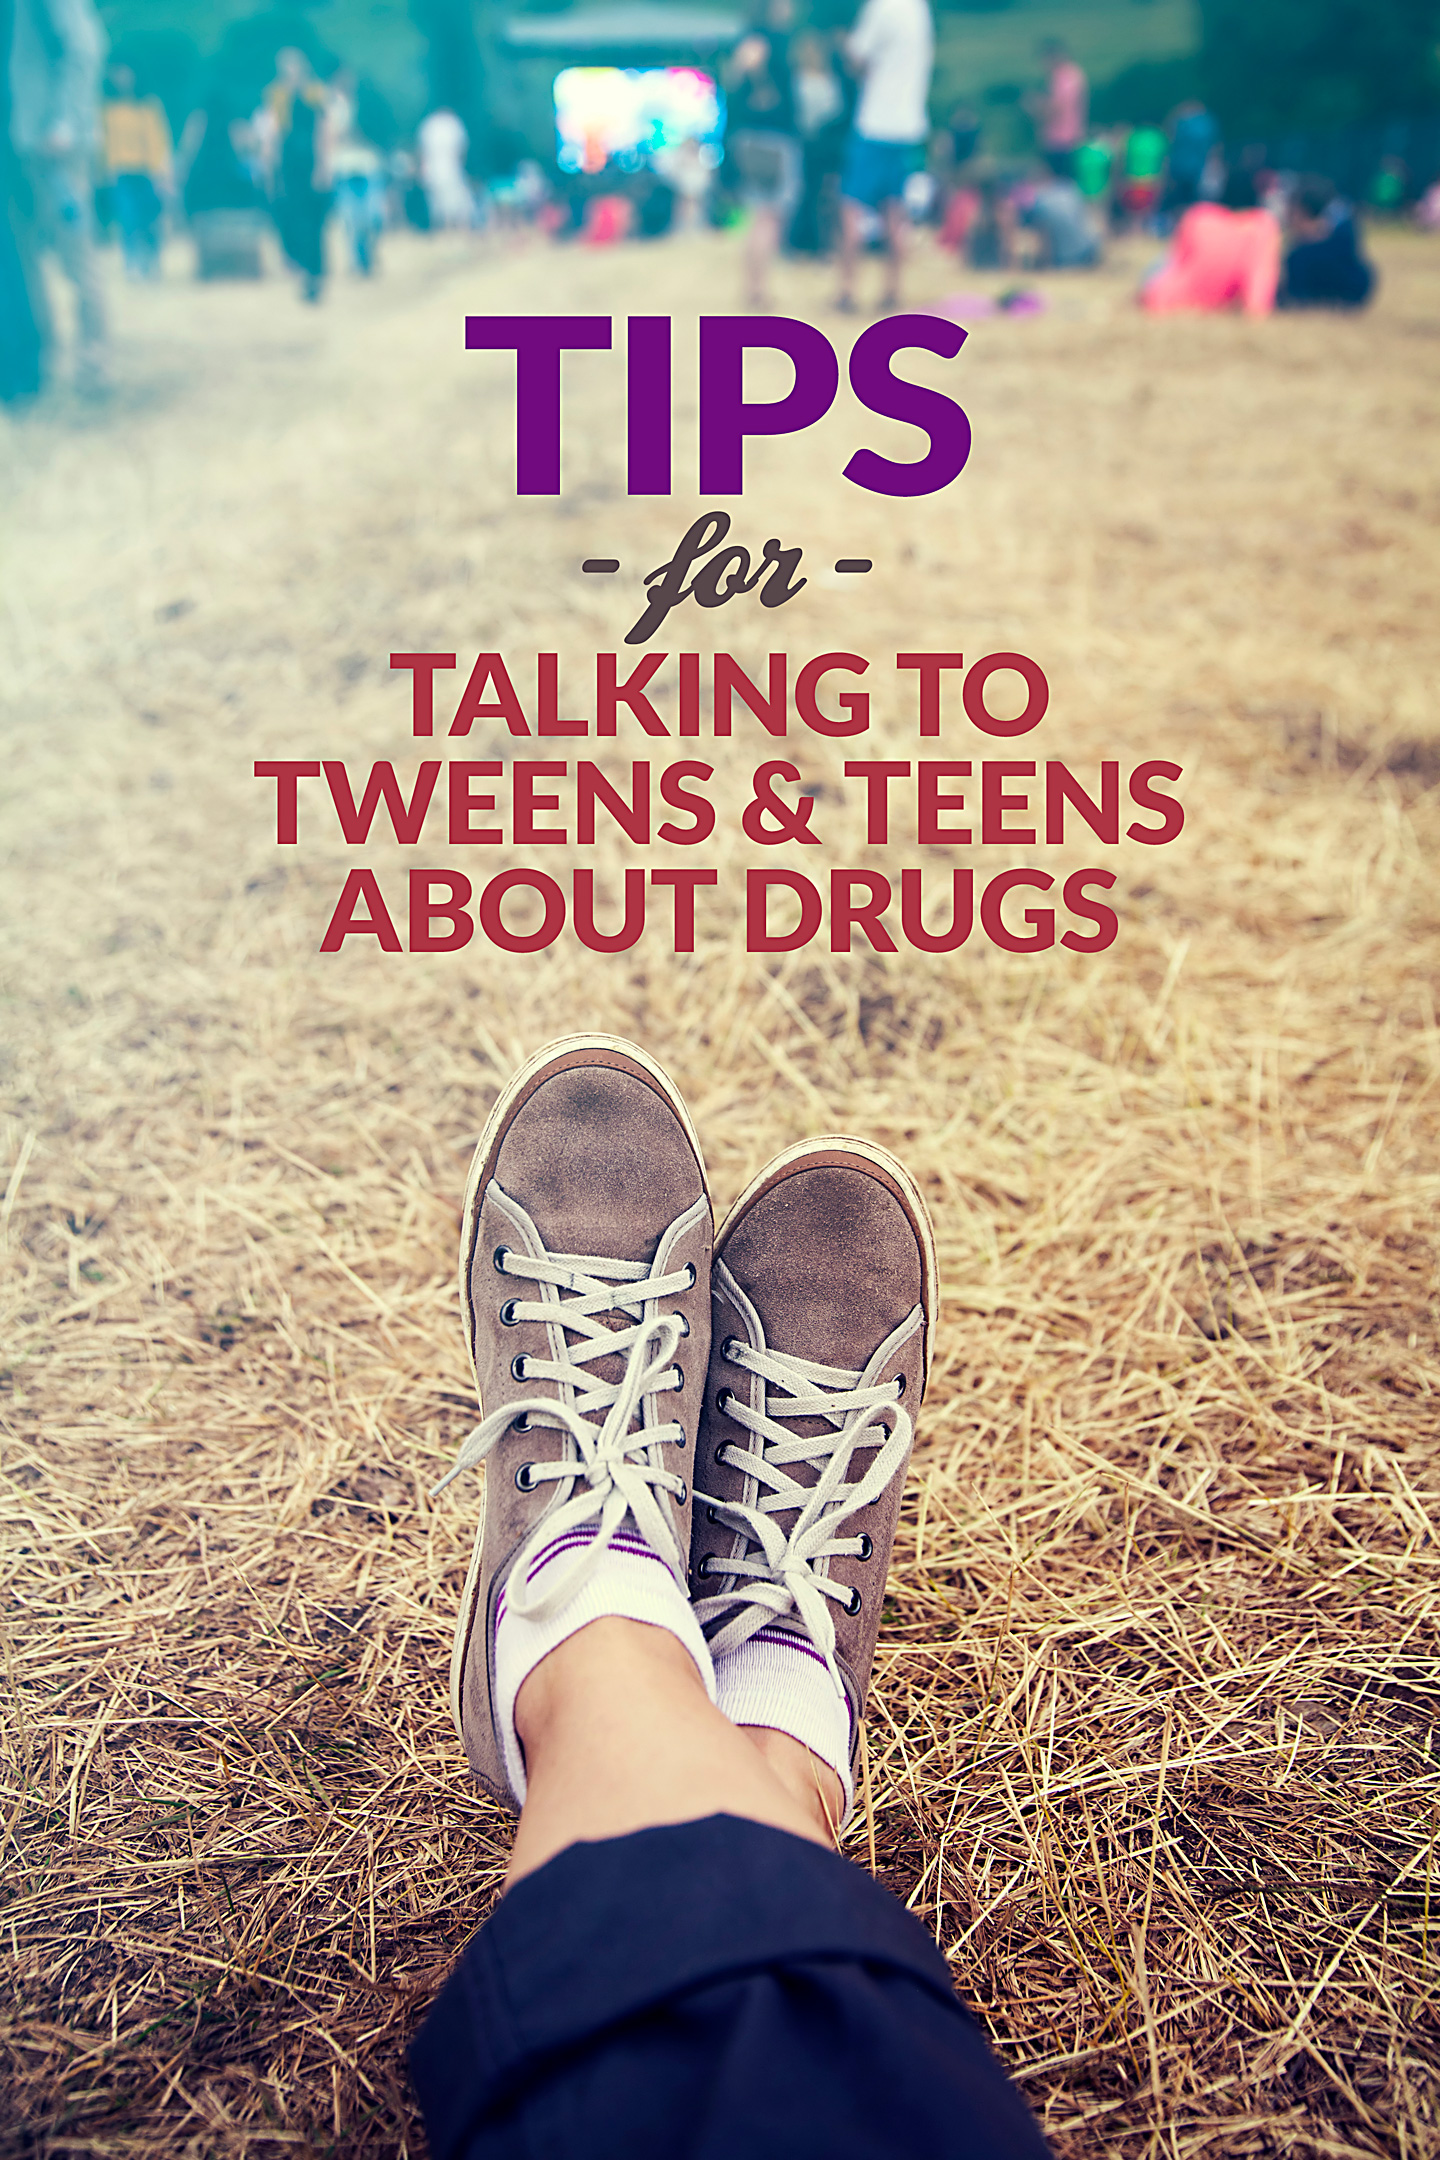 Talking To Your Teens About Drug Use - Tips for Parents #parenting #drugs #tweens #teens